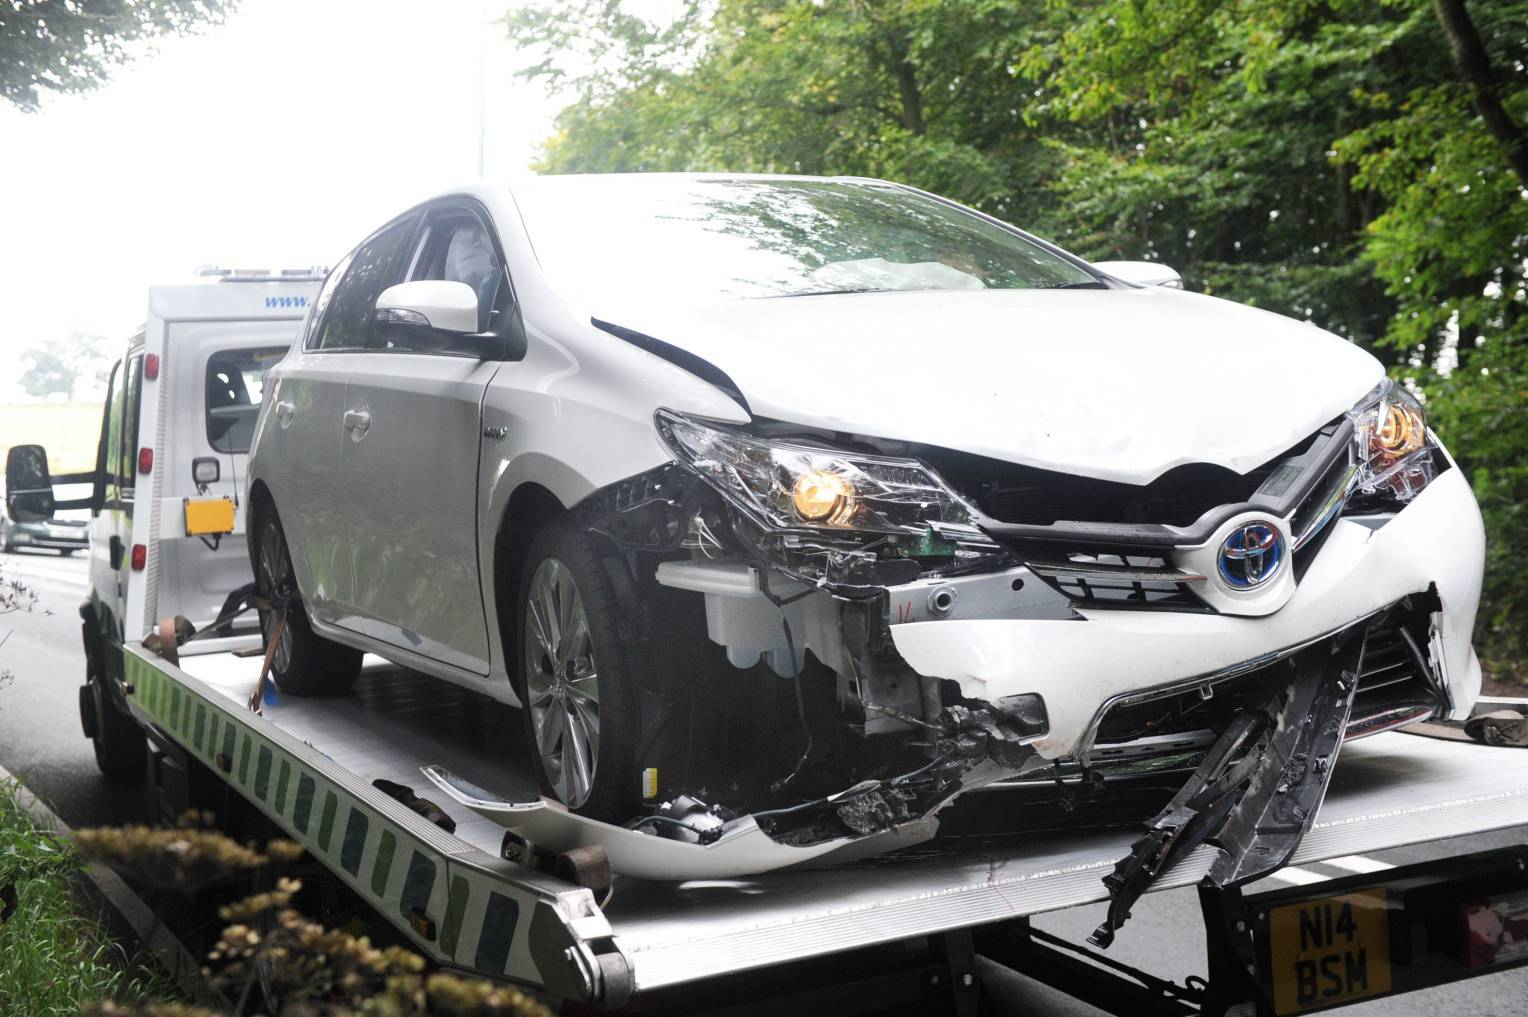 A Toyota was involved in the collision on the A957.